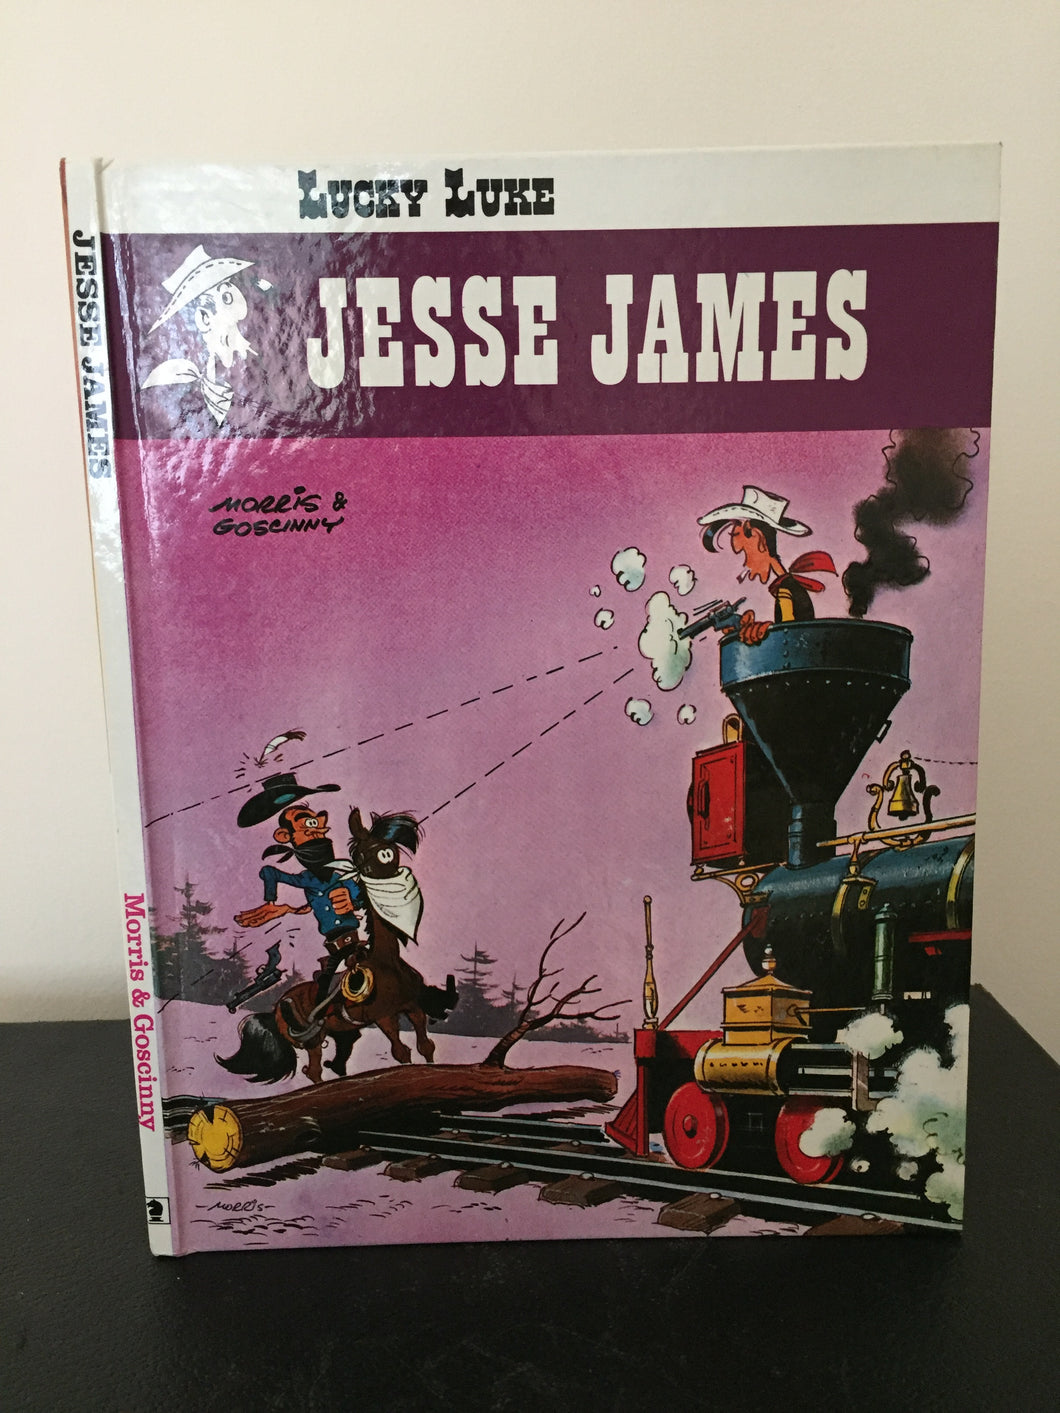 Lucky Luke - Jessie James